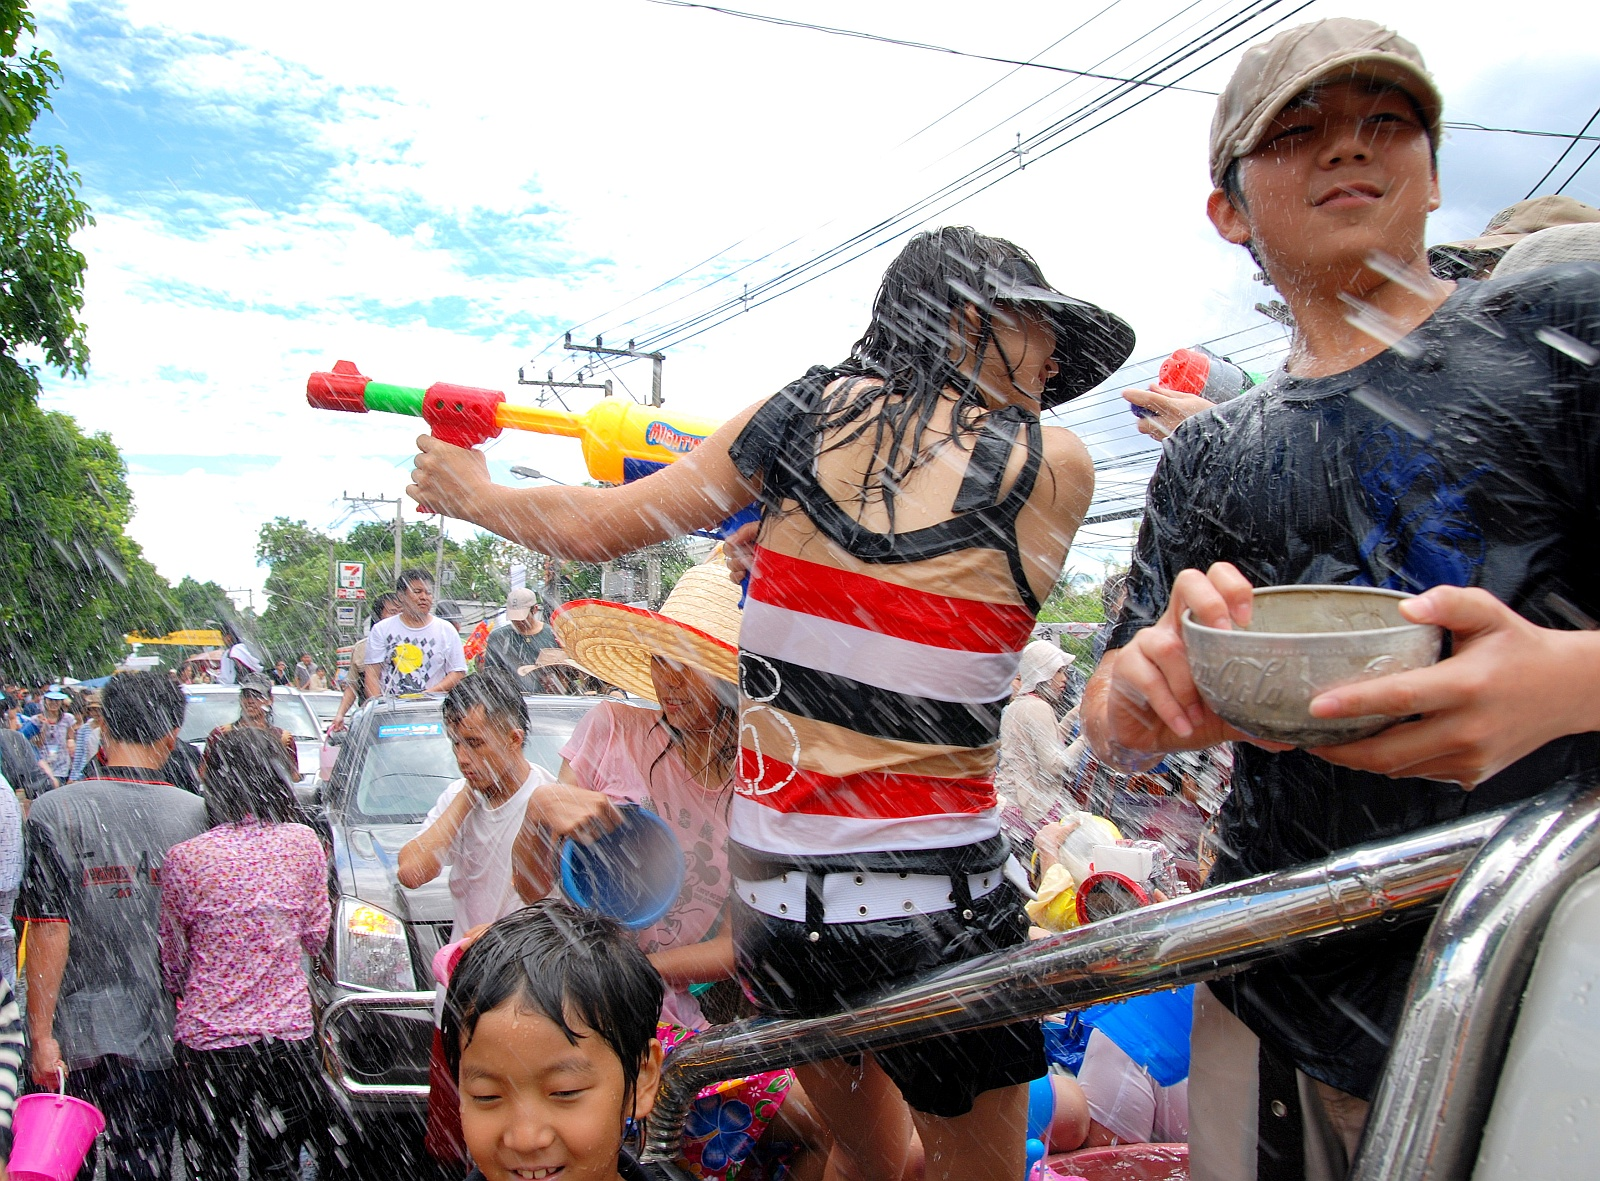 File:SONGKRAN 012.jpg - Wikipedia, the free encyclopedia